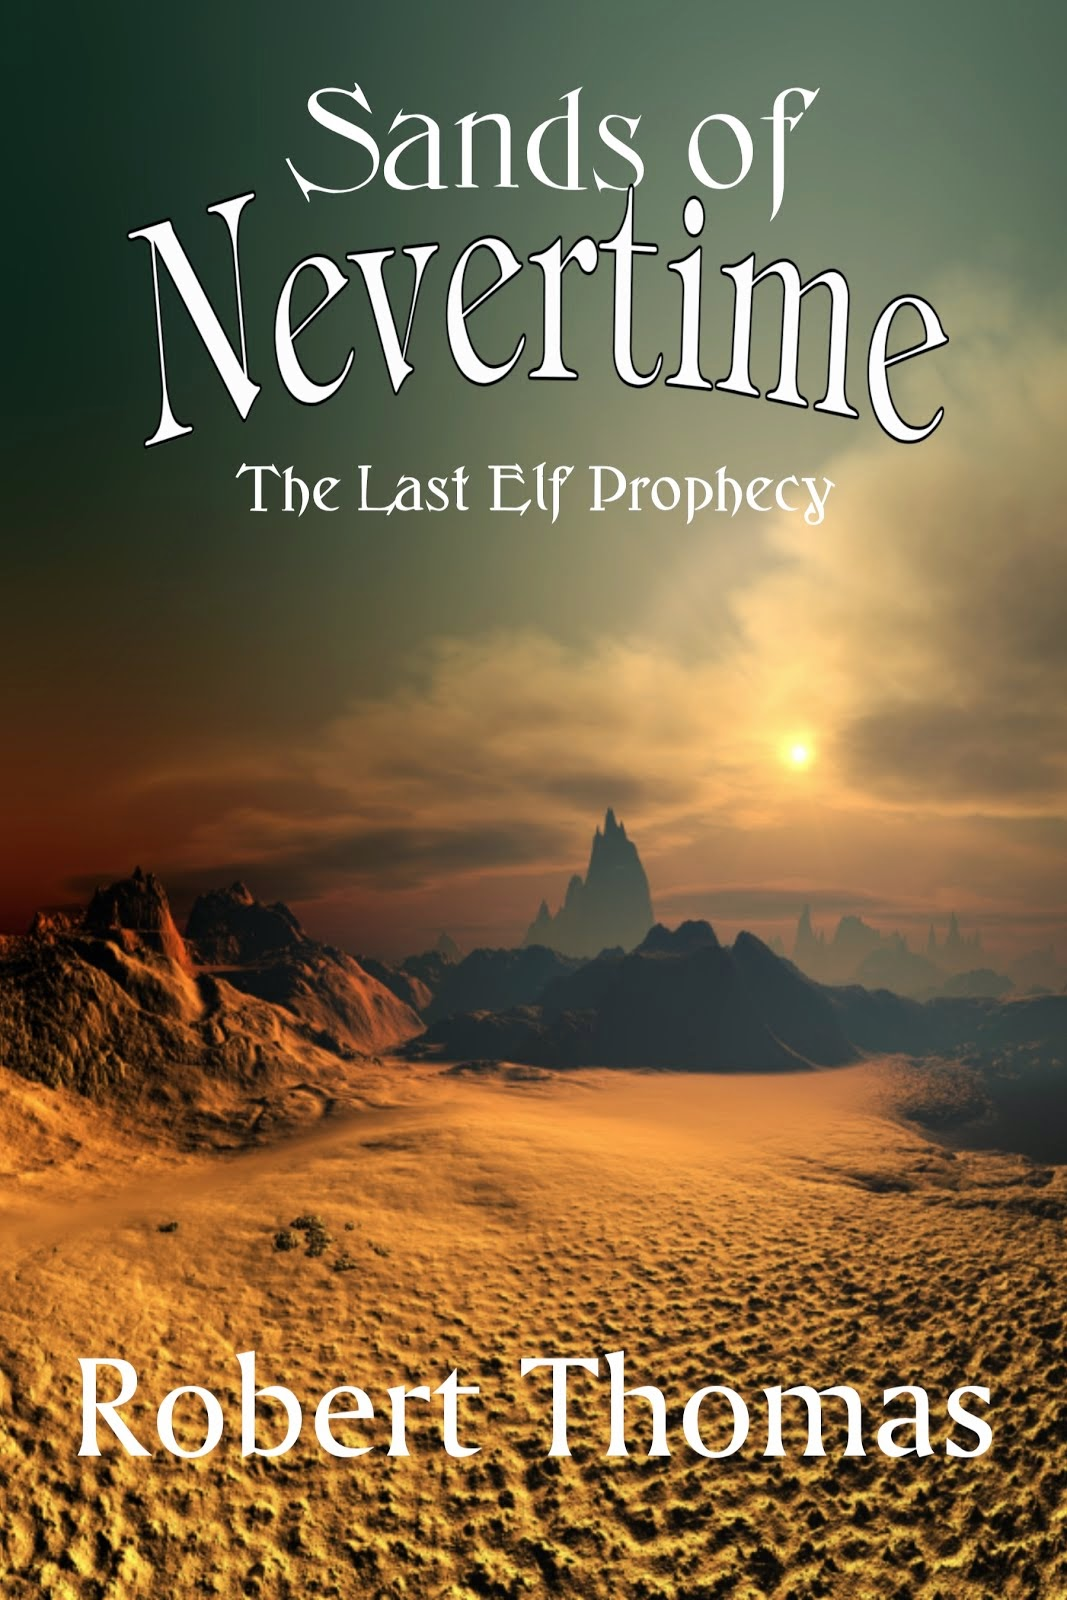 Sands of Nevertime at Amazon.com